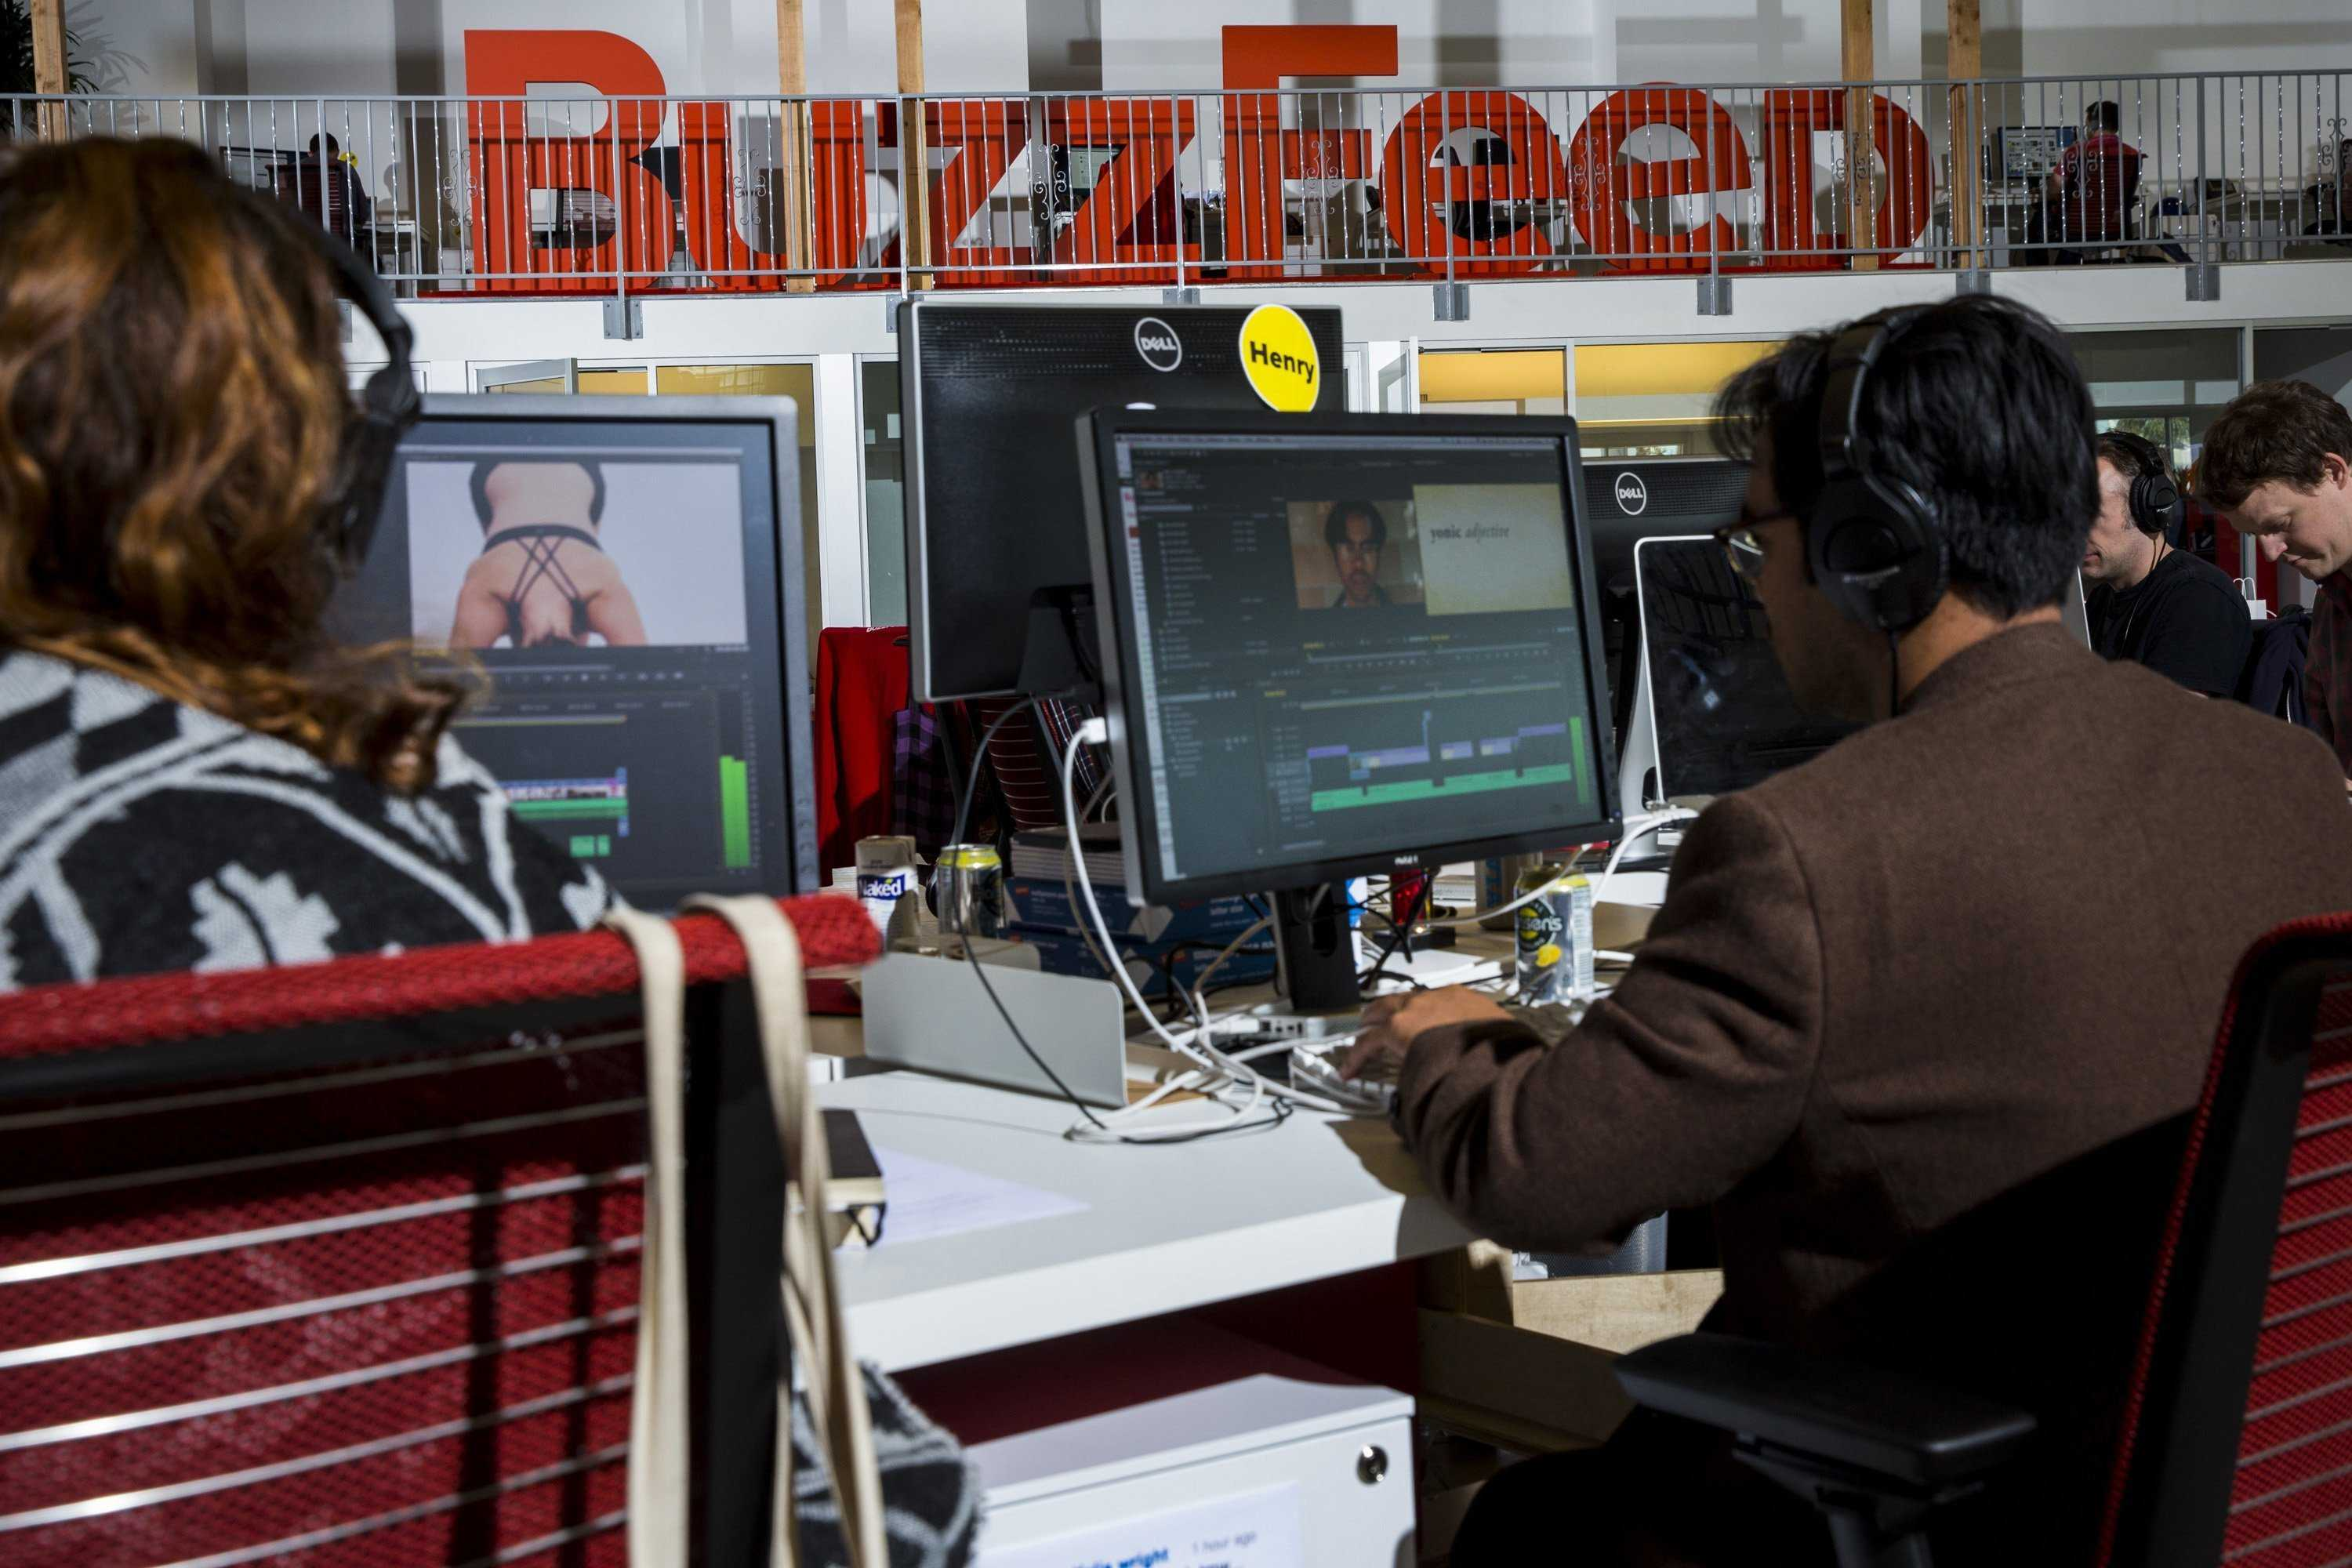 Buzzfeed headquarters in Los Angeles, California. (Jay L. Clendenin/Los Angeles Times/MCT)